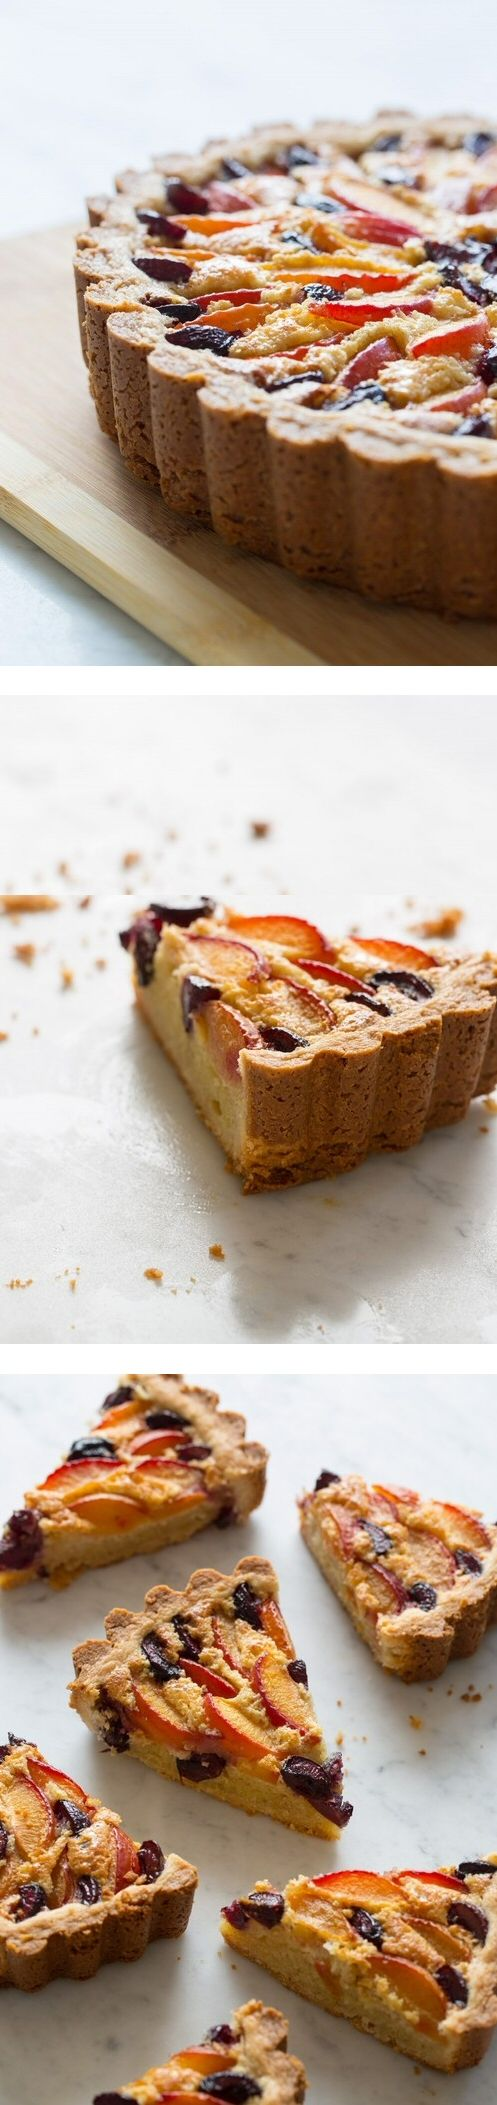 Red Apricot and Sweet Cherry Tart | Food | Pinterest